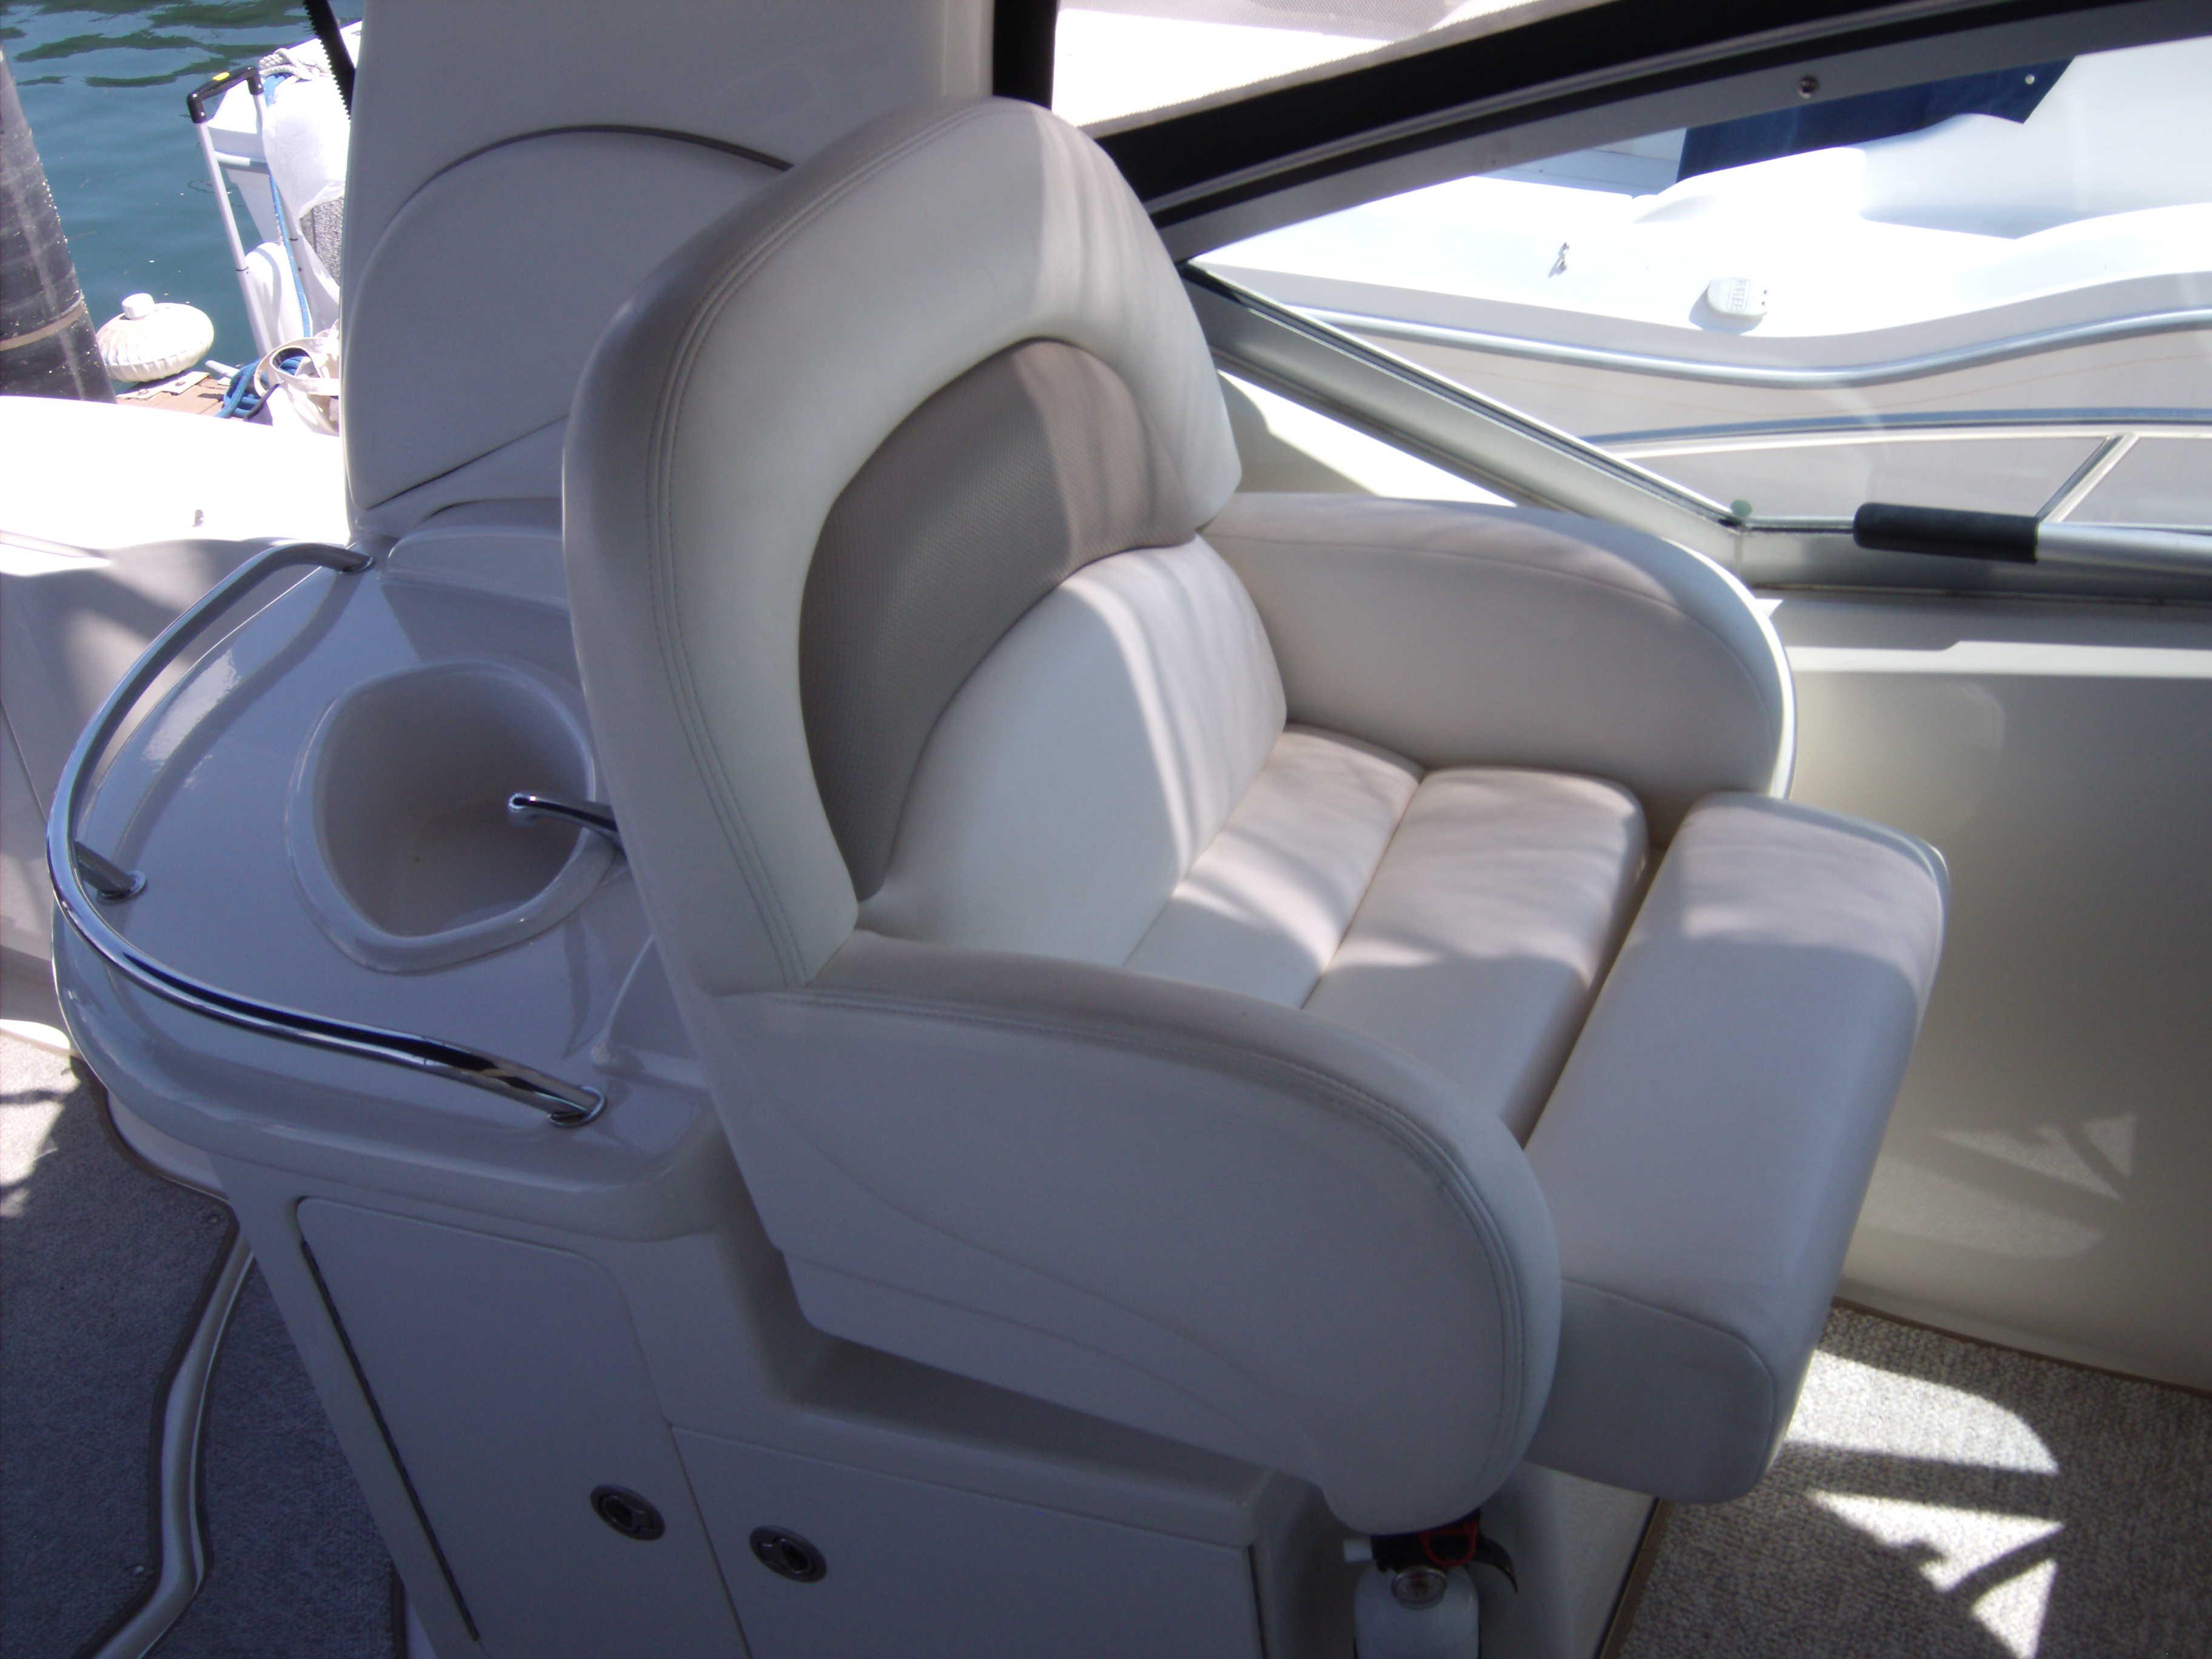 Cockpit Seating With Table